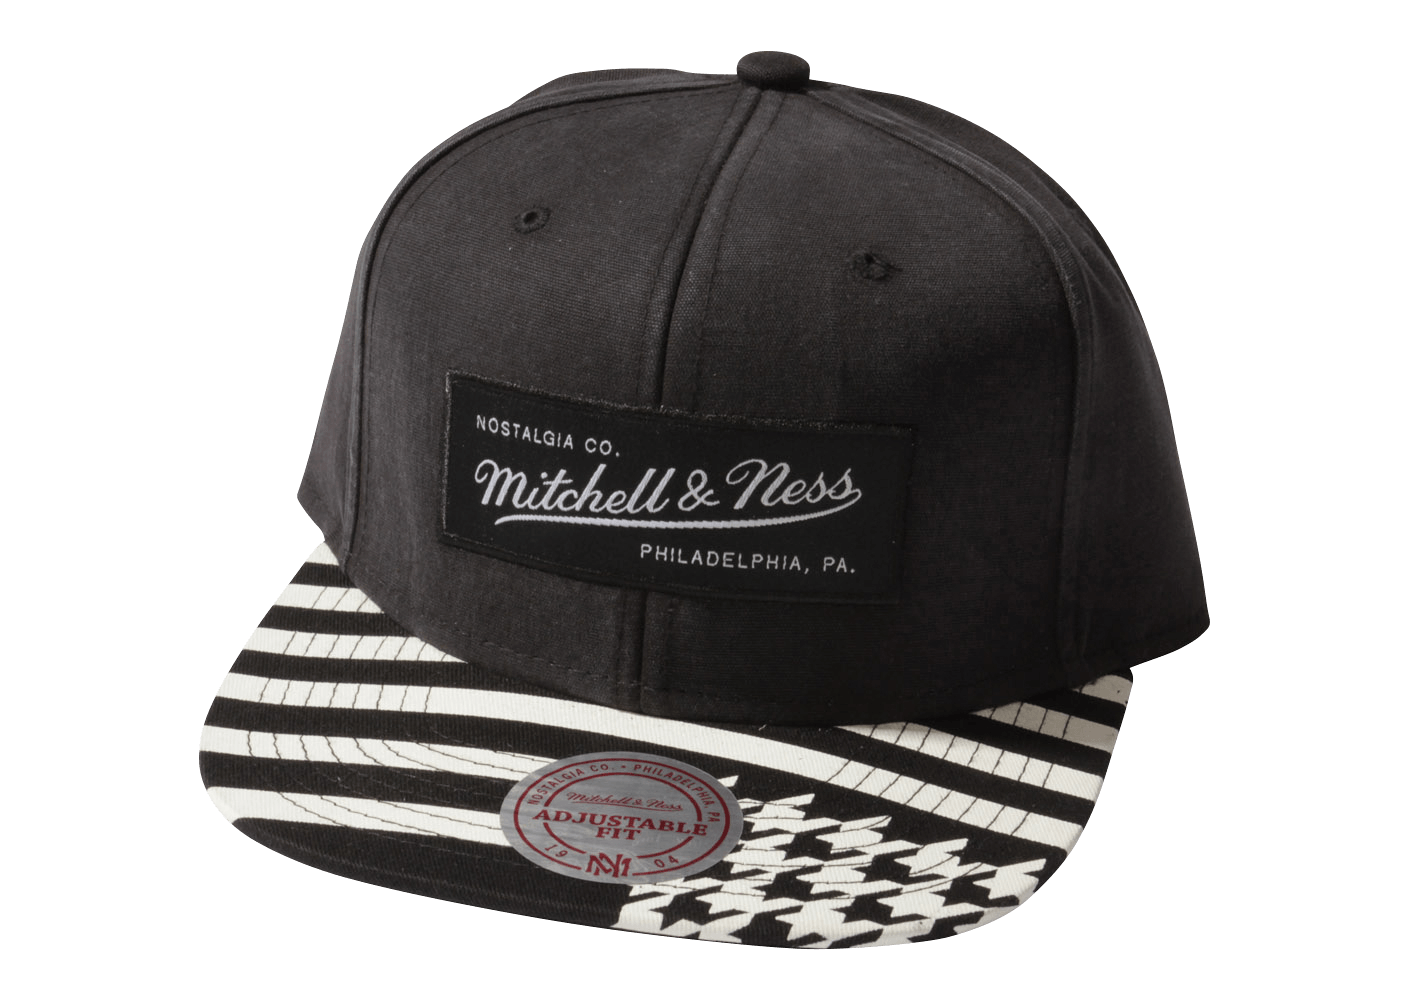 mitchell ness casquette snapback houndstooth noire et blanche casquettes chausport. Black Bedroom Furniture Sets. Home Design Ideas